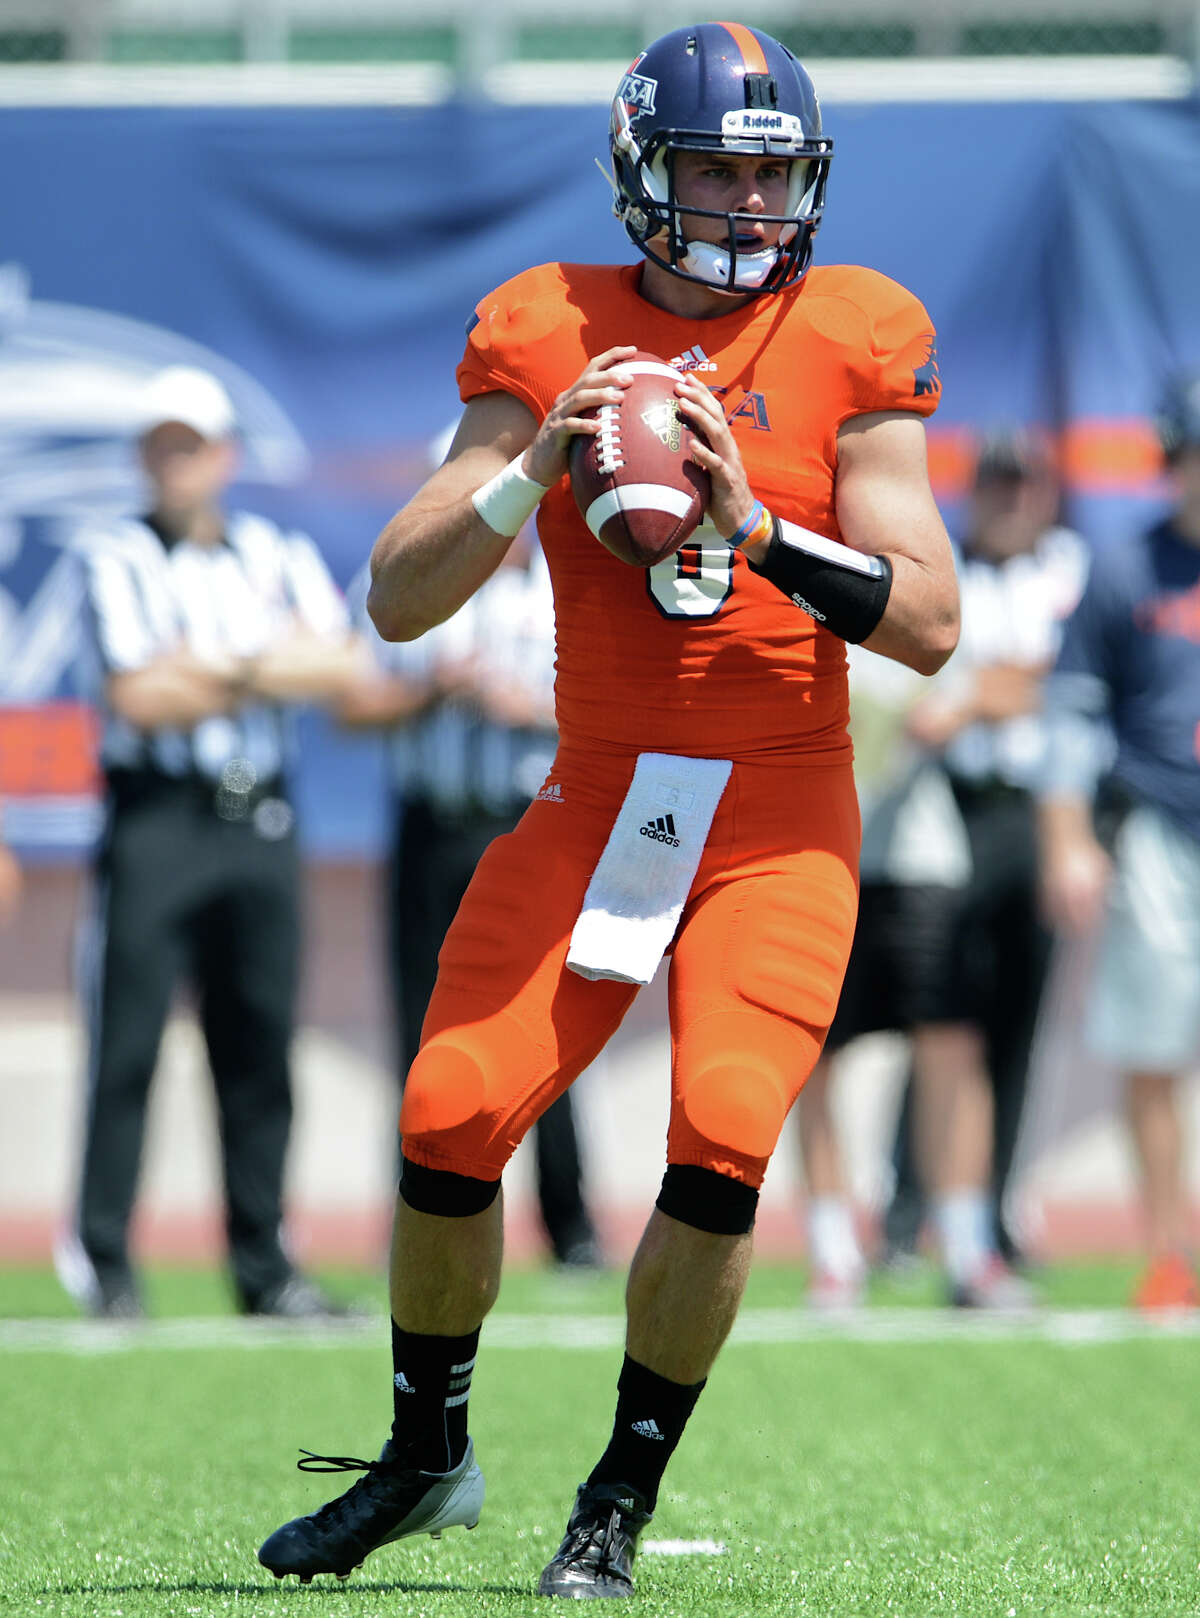 QUARTERBACK, Eric Soza: Beeville, senior - Threw for 20 touchdowns against only three interceptions last season. He made the preseason Manning Award watch list and has earned raves for early work in fall camp.PHOTO: Soza looks for an open man during the UTSA spring game at Farris Stadium on April 14, 2013.